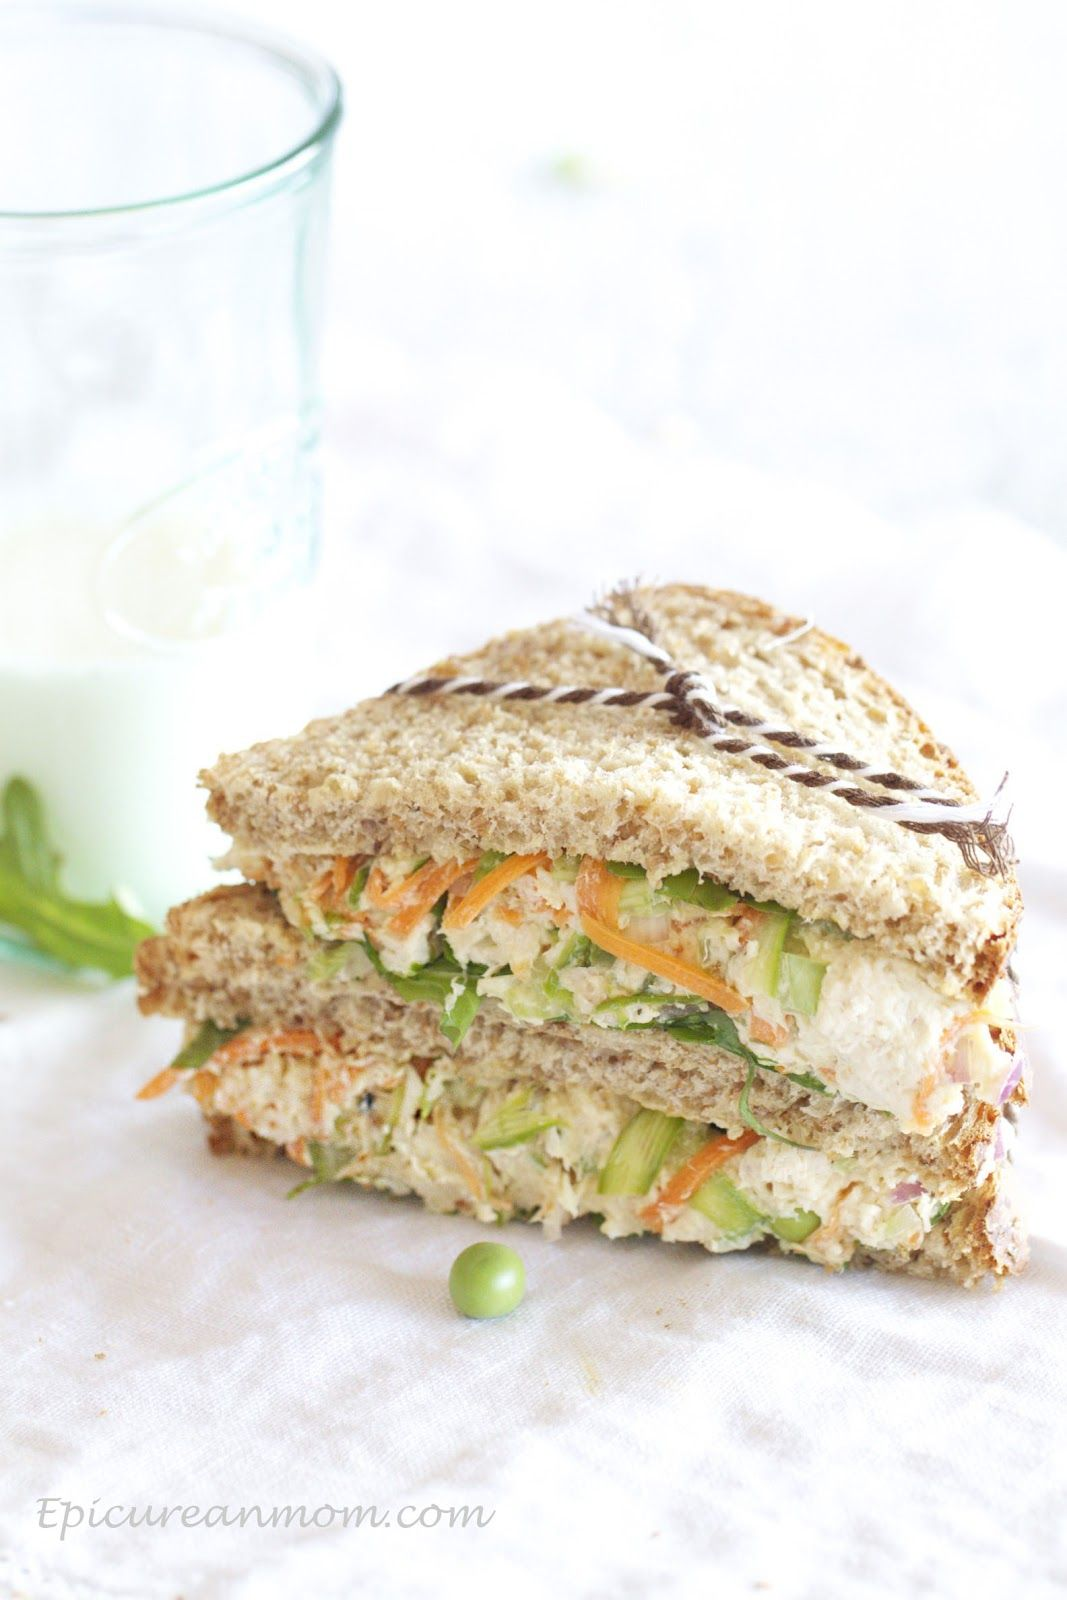 Healthy Chicken Salad Sandwich Recipe by epicureanmom #Sandwich #Chicken_Salad #Healthy #epicureanmom